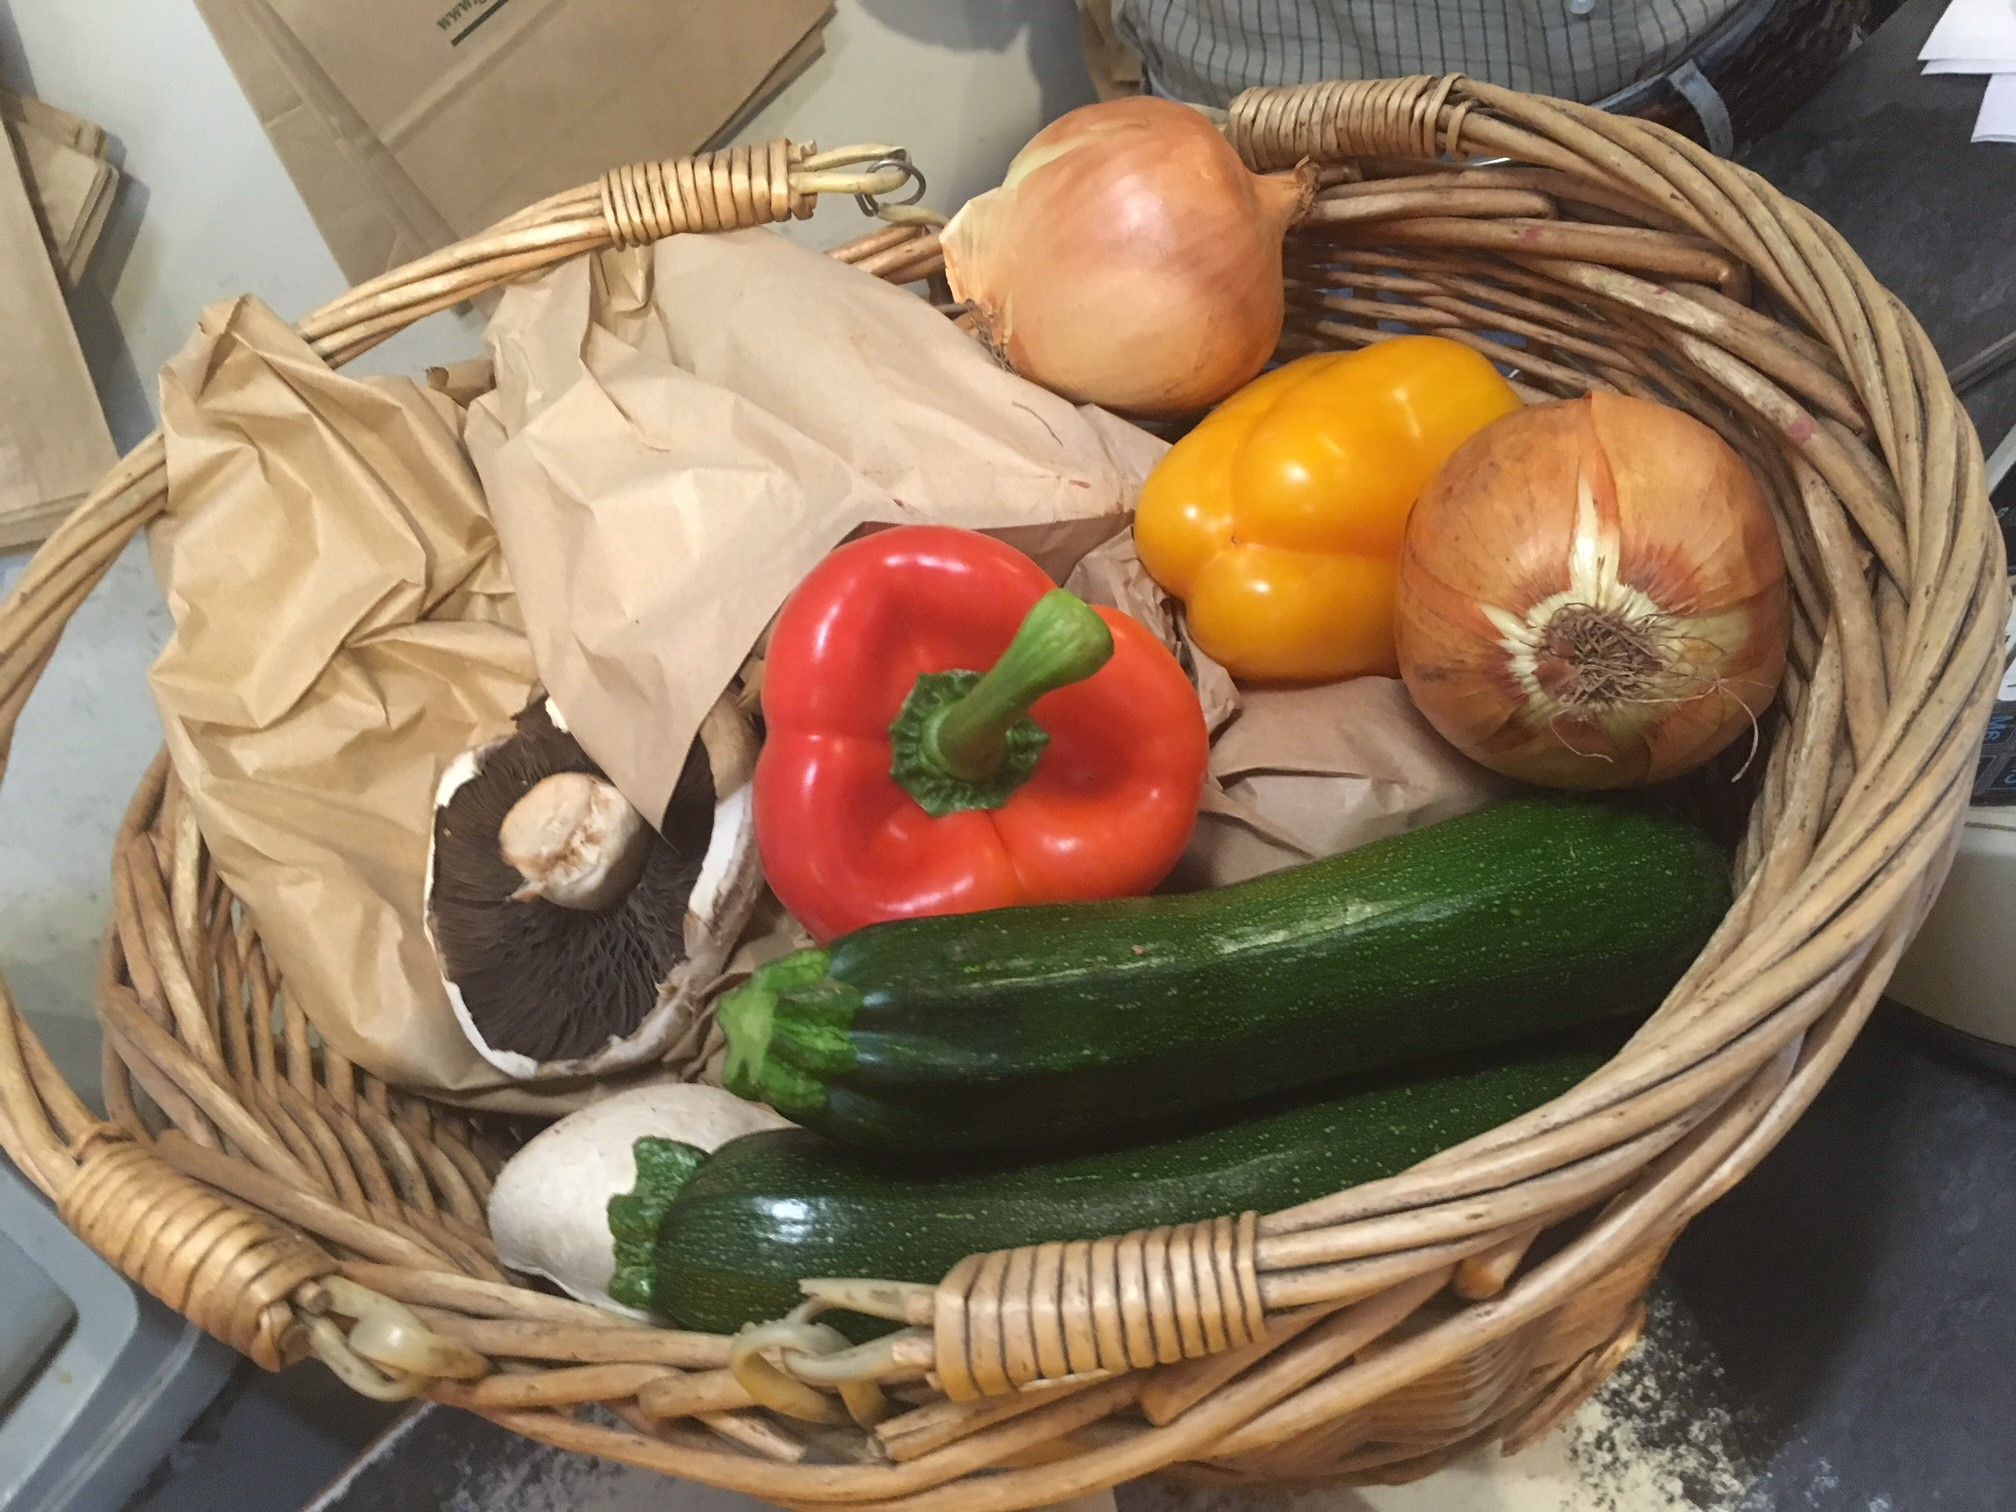 Vegetables in a basket not plastic bags